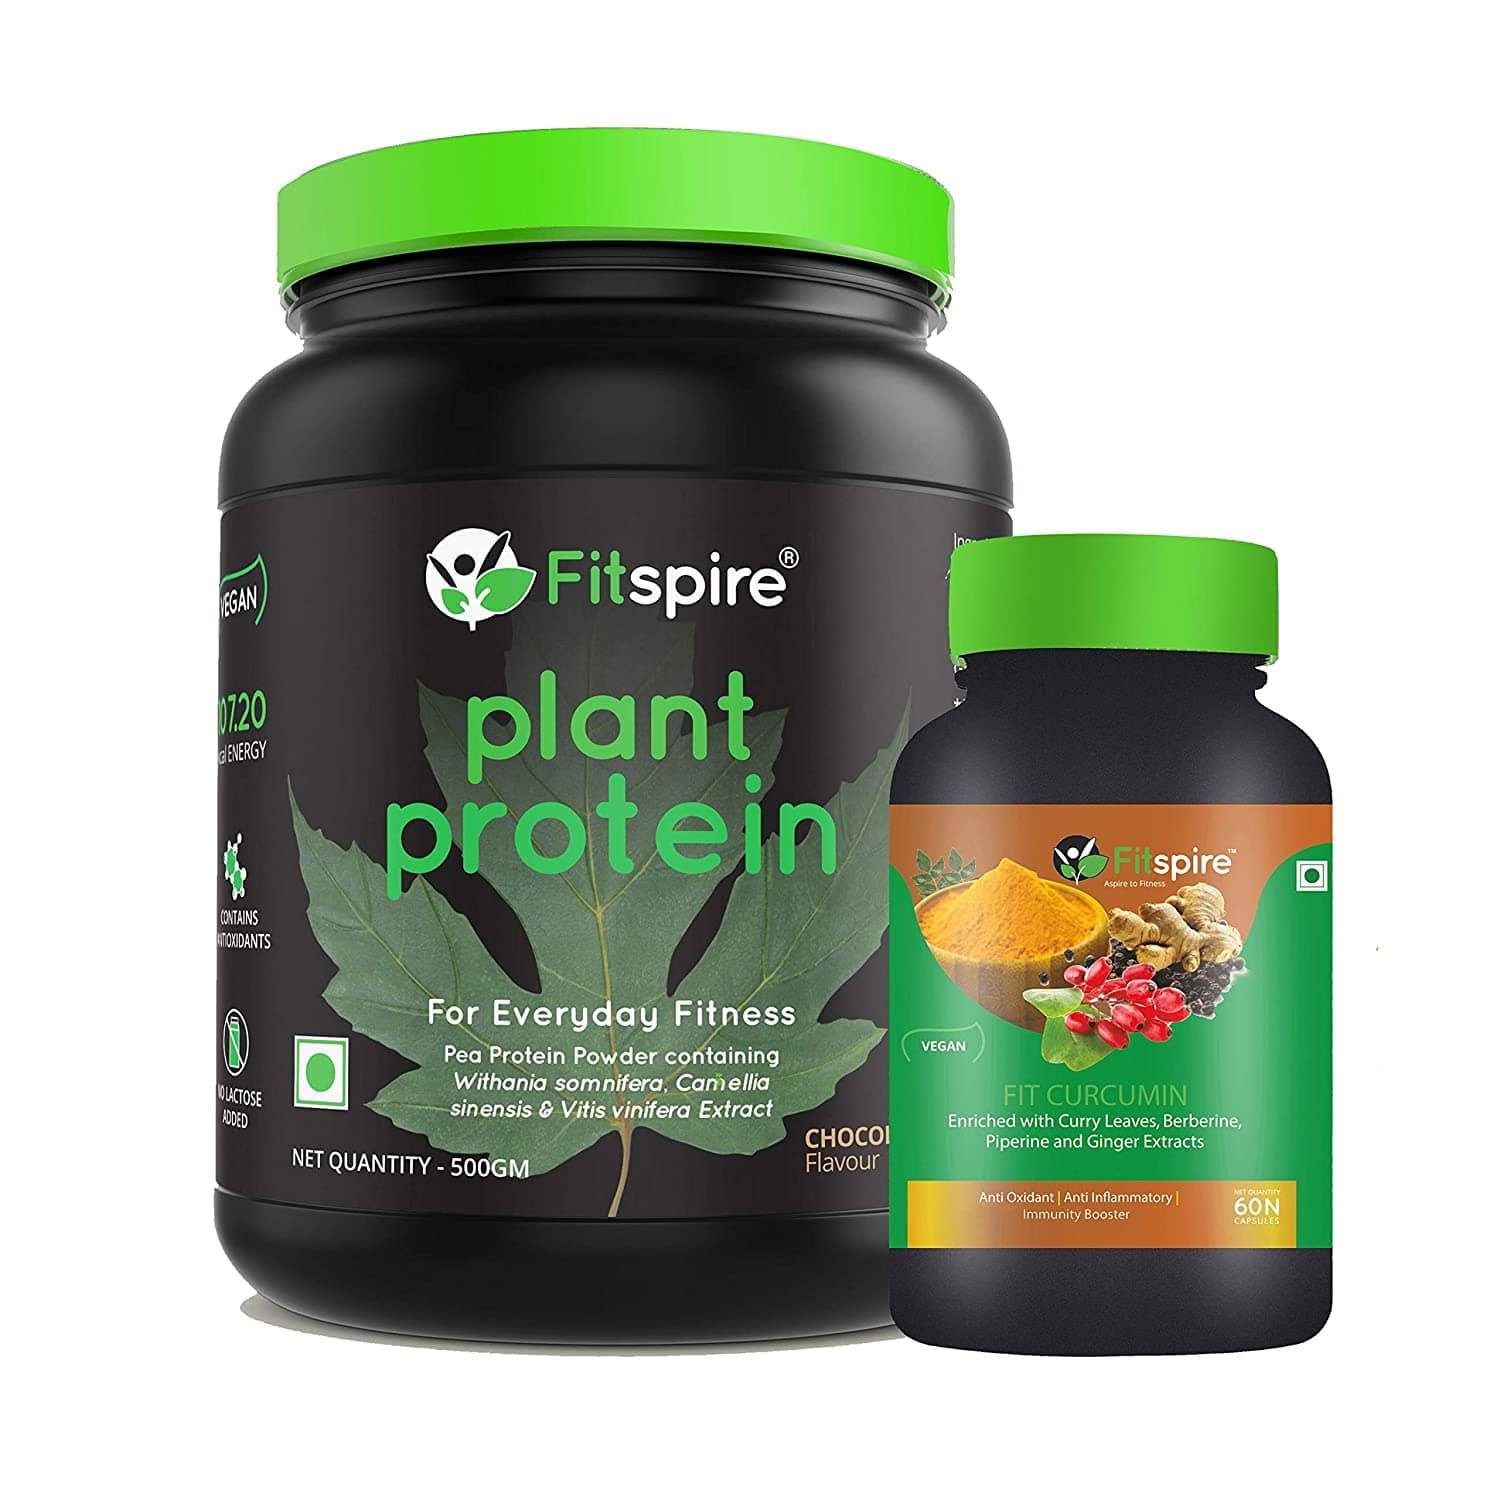 Fitspire Plant Protein with Fit Curcumin Combo Pack